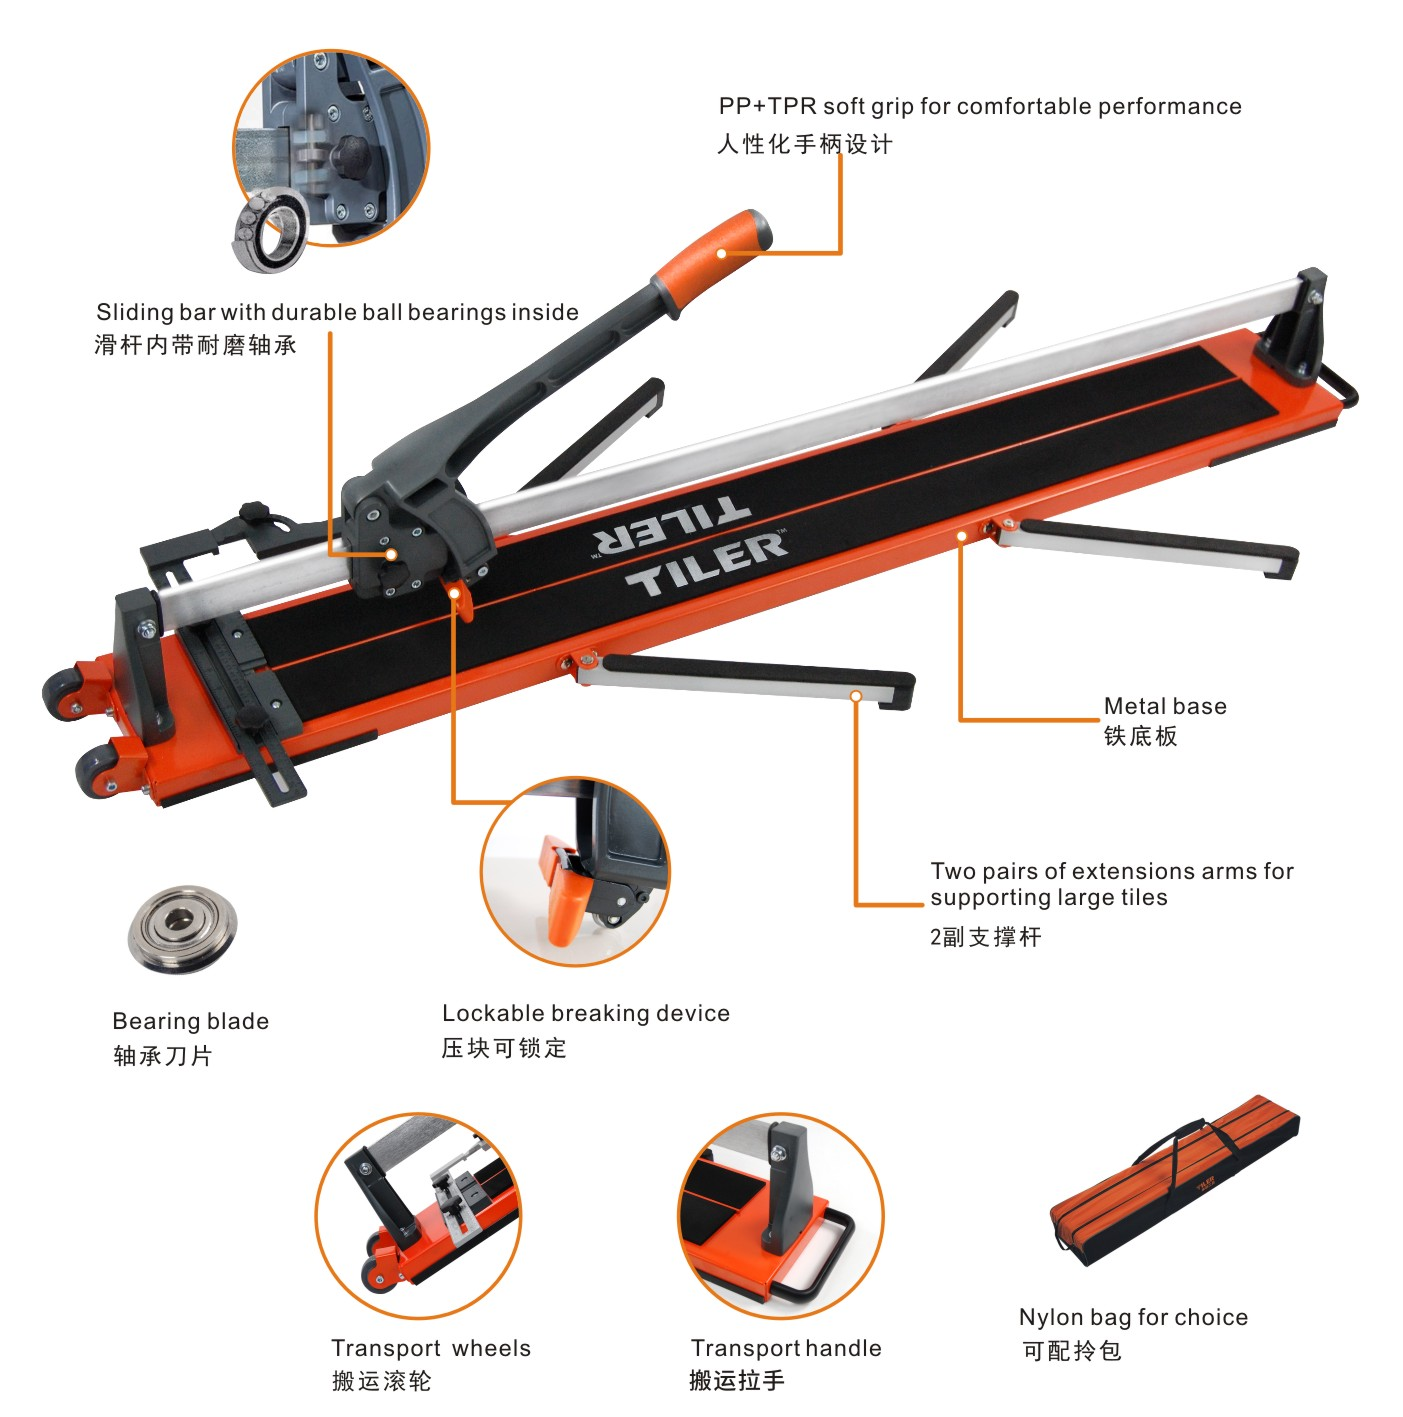 john tools 8102g 2s manual tile cutter tile cutting machine 1200mm werkzeug snap on tool ceramic floor cutter tile fixing tools buy other hand tools tile tools wall cutter machine hand craft